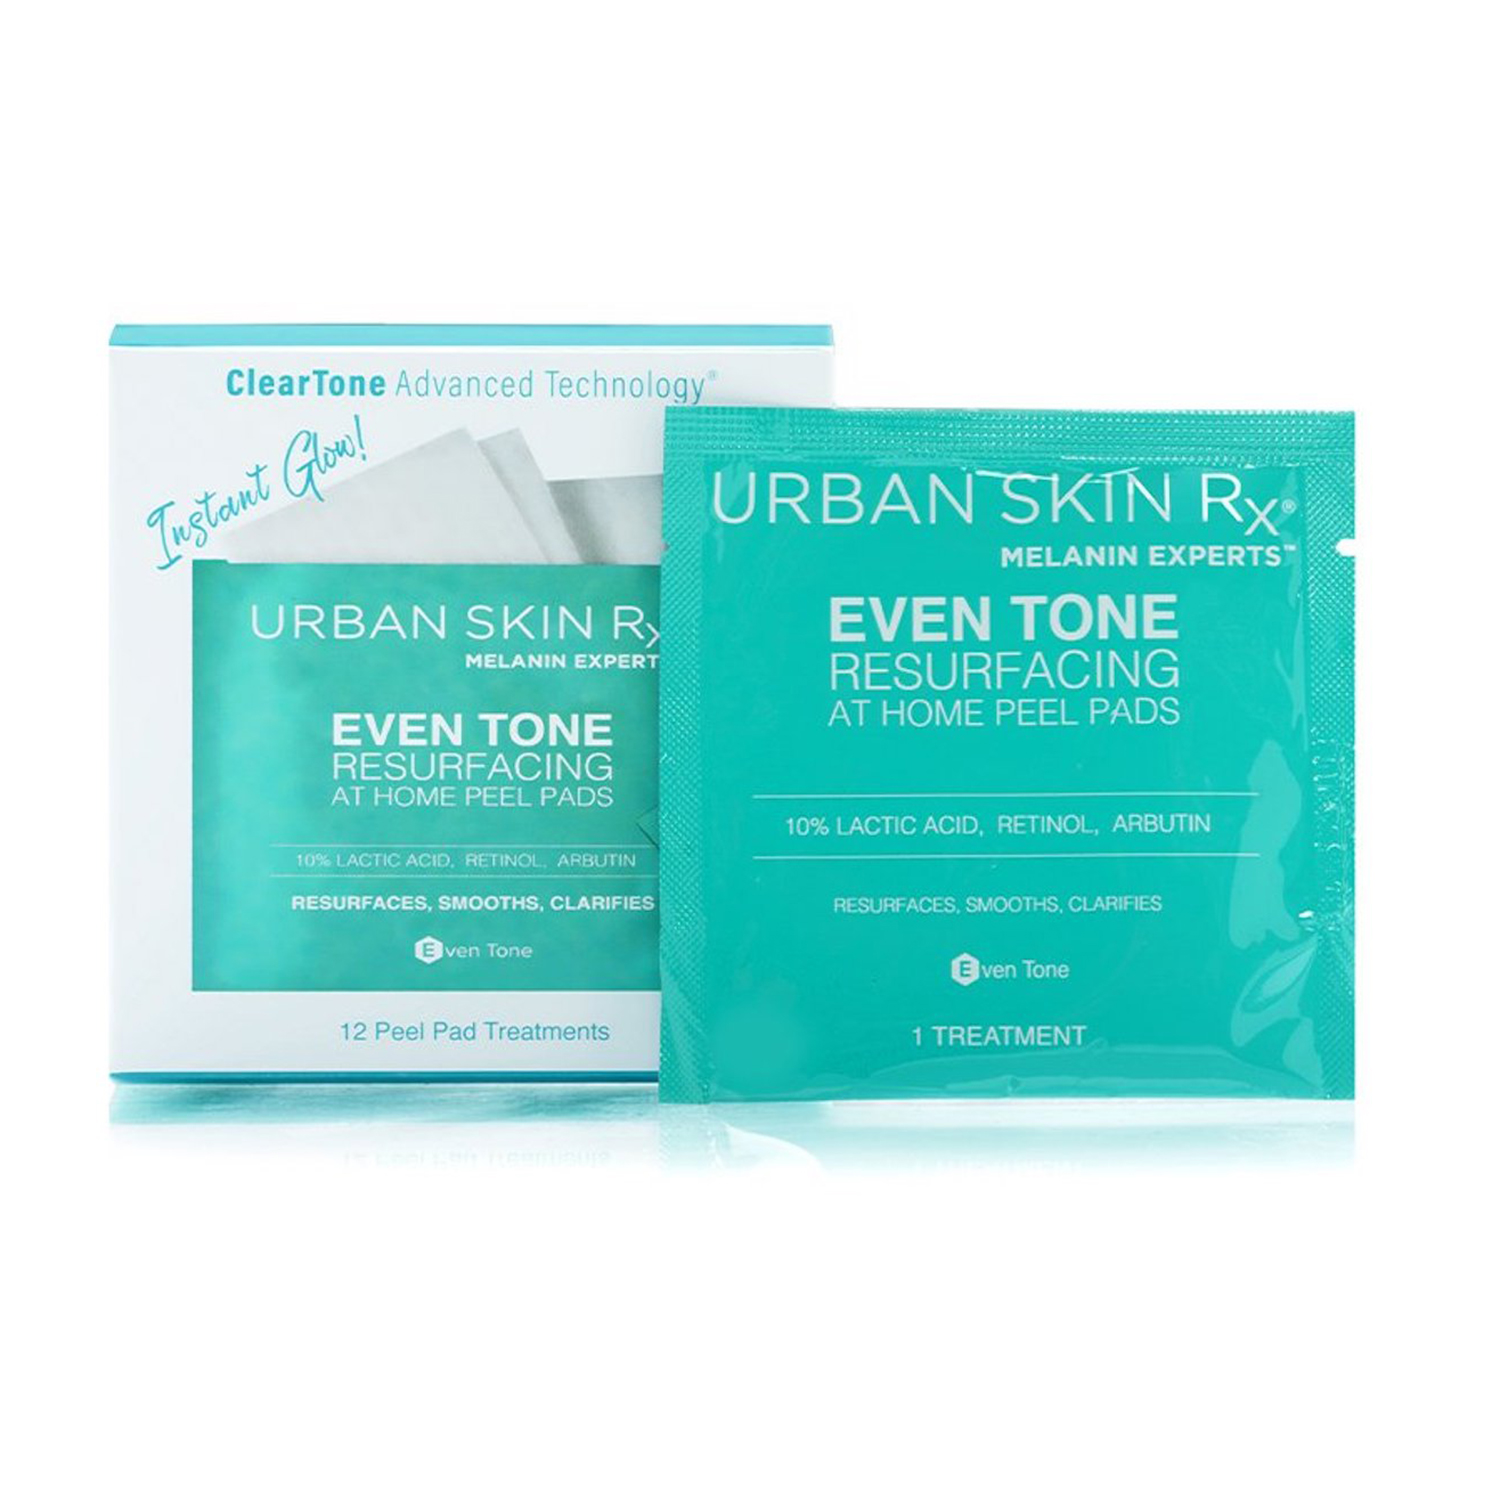 Urban Skin Rx Even Tone Resurfacing At Home Peel Pads